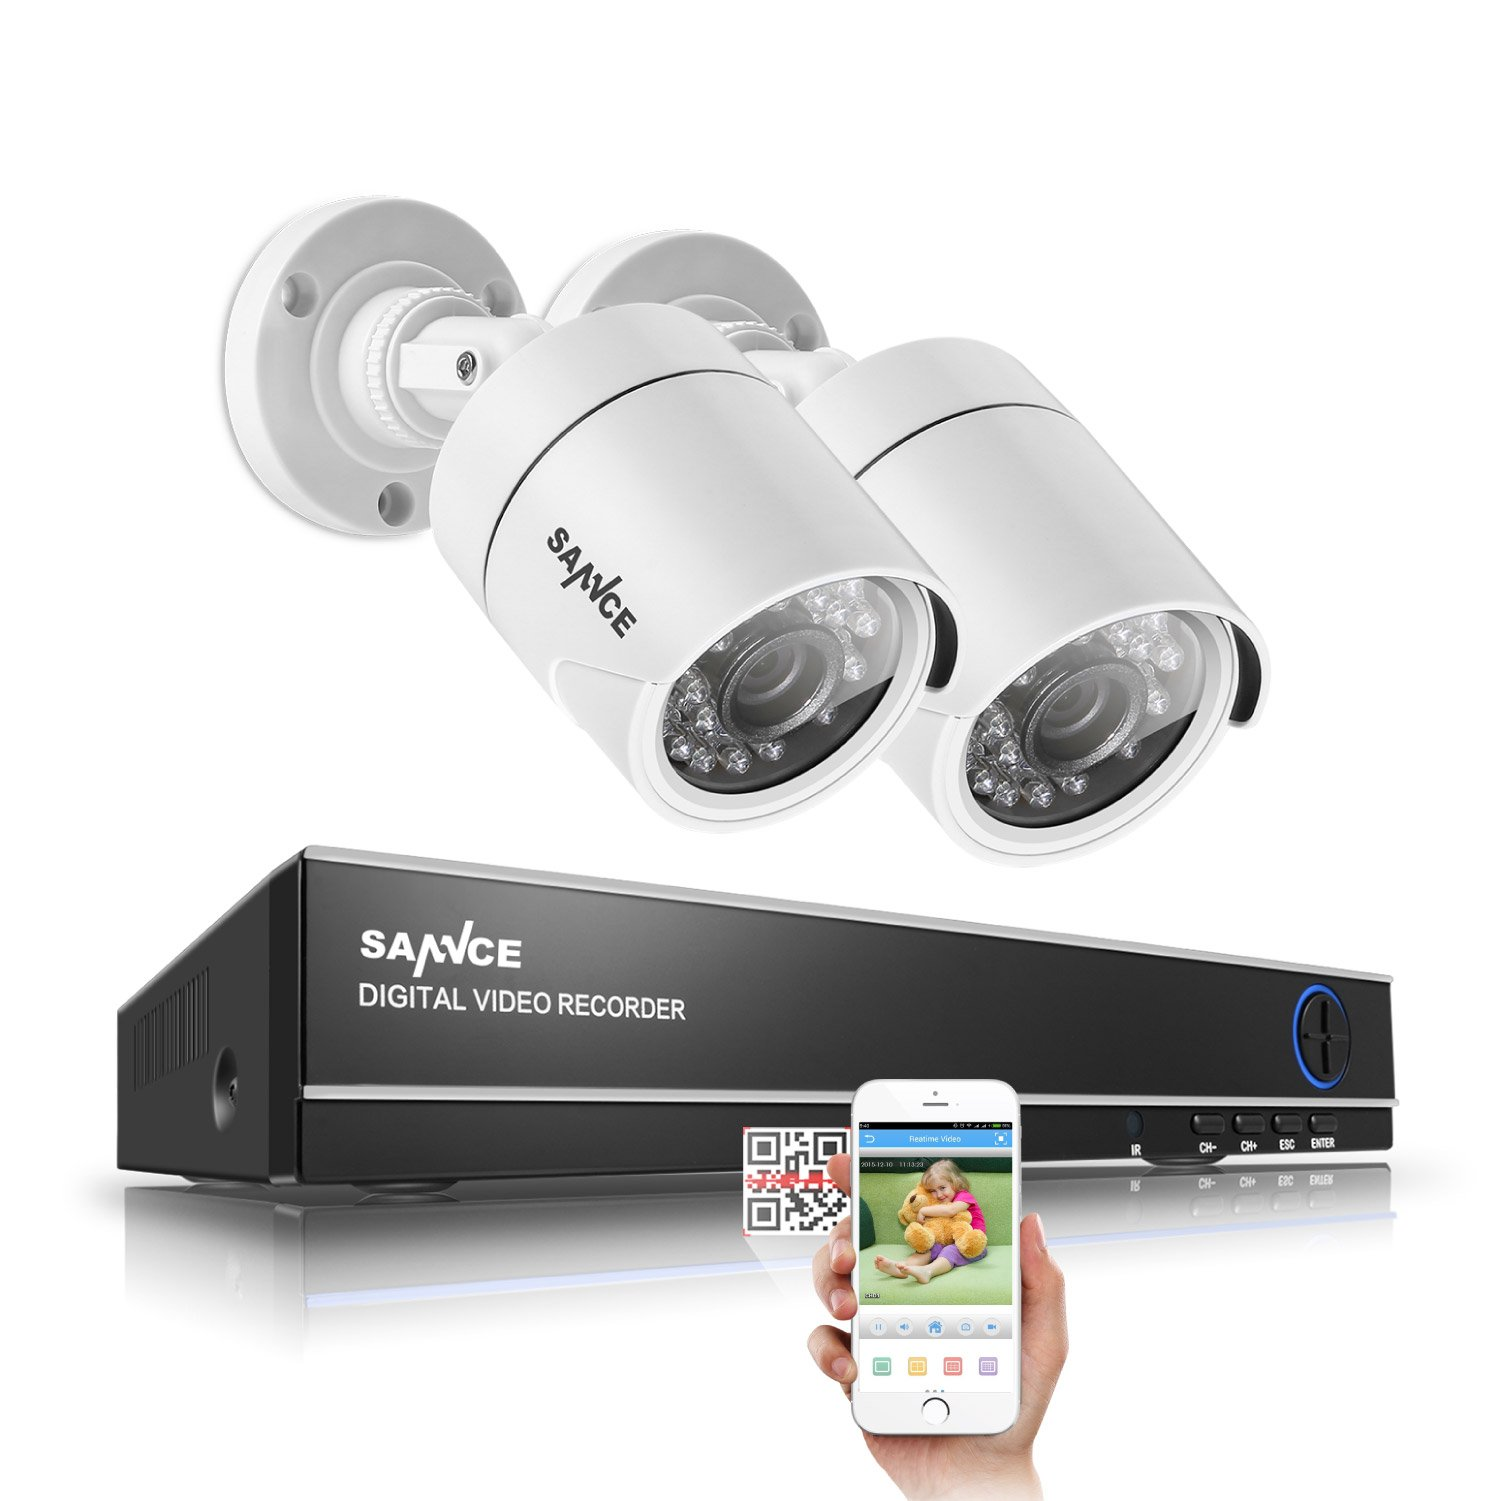 SANNCE 720P Video Security Camera System 1080N DVR and (2) 1.0MP Indoor/Outdoor Weatherproof CCTV Cameras, IR Leds Night Vision, NO HDD